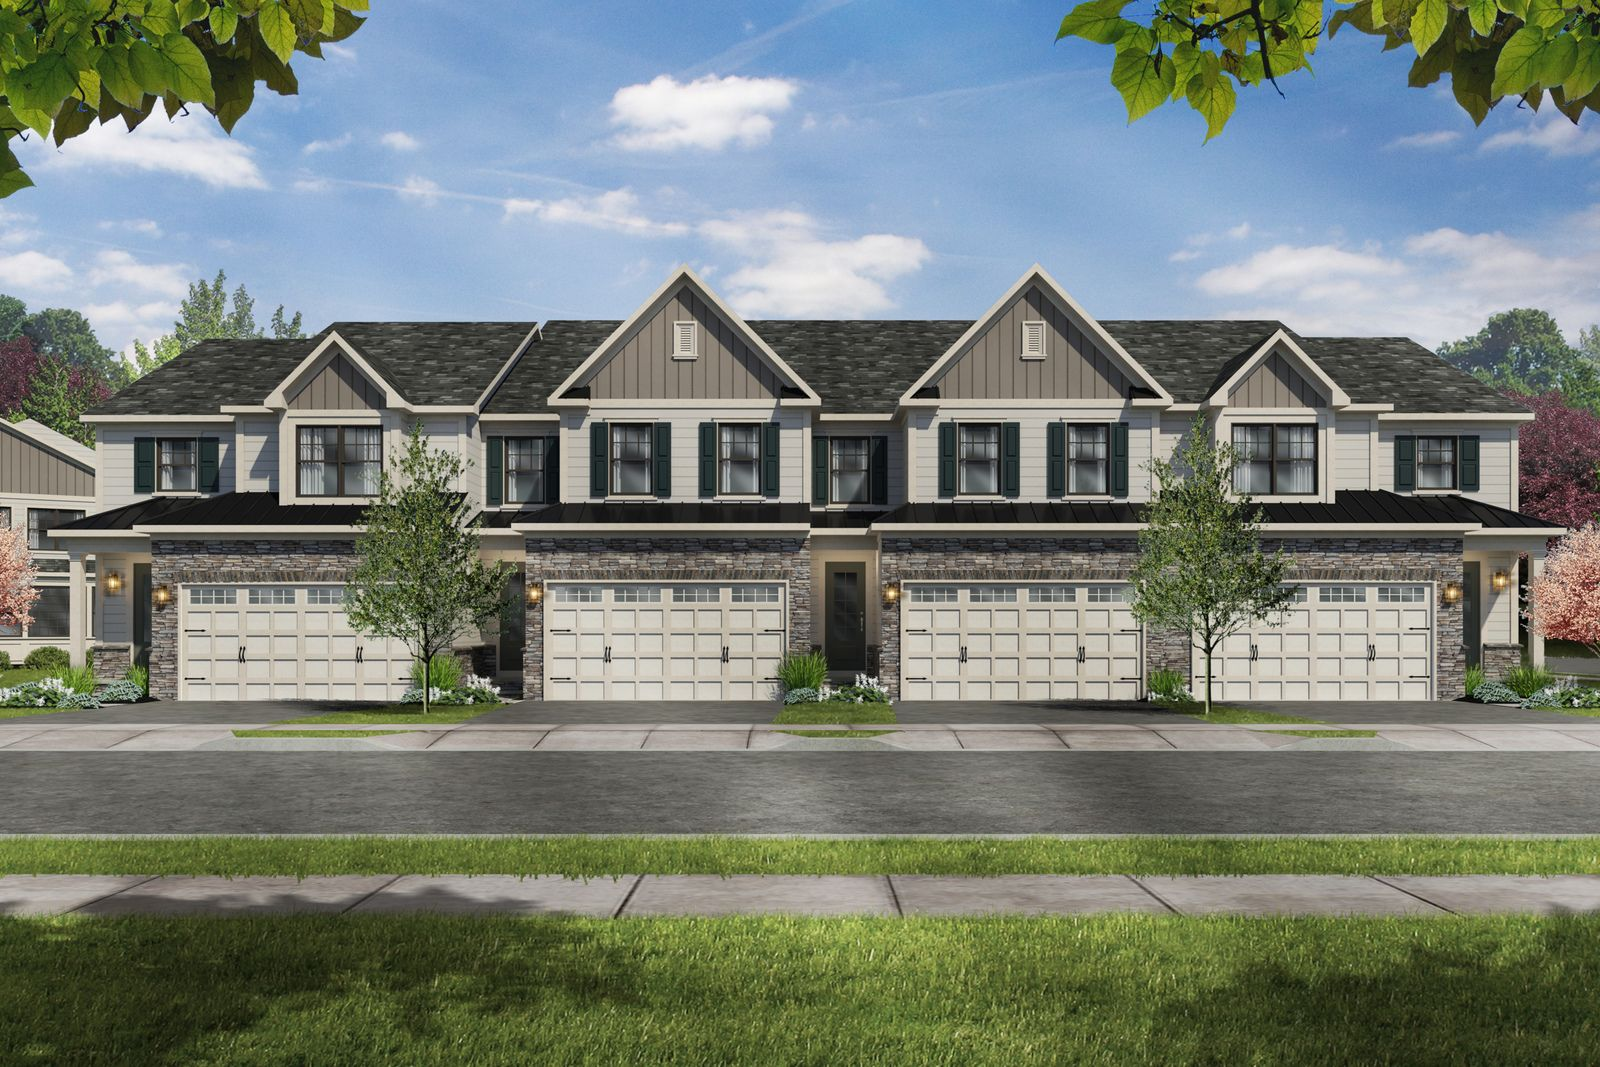 WELCOME TO WAYNE GLEN:The only new luxury homes in Wayne with low-maintenance lifestyle, walkable to KOP Town Center in TE schools.Click hereto schedule your appointment today!